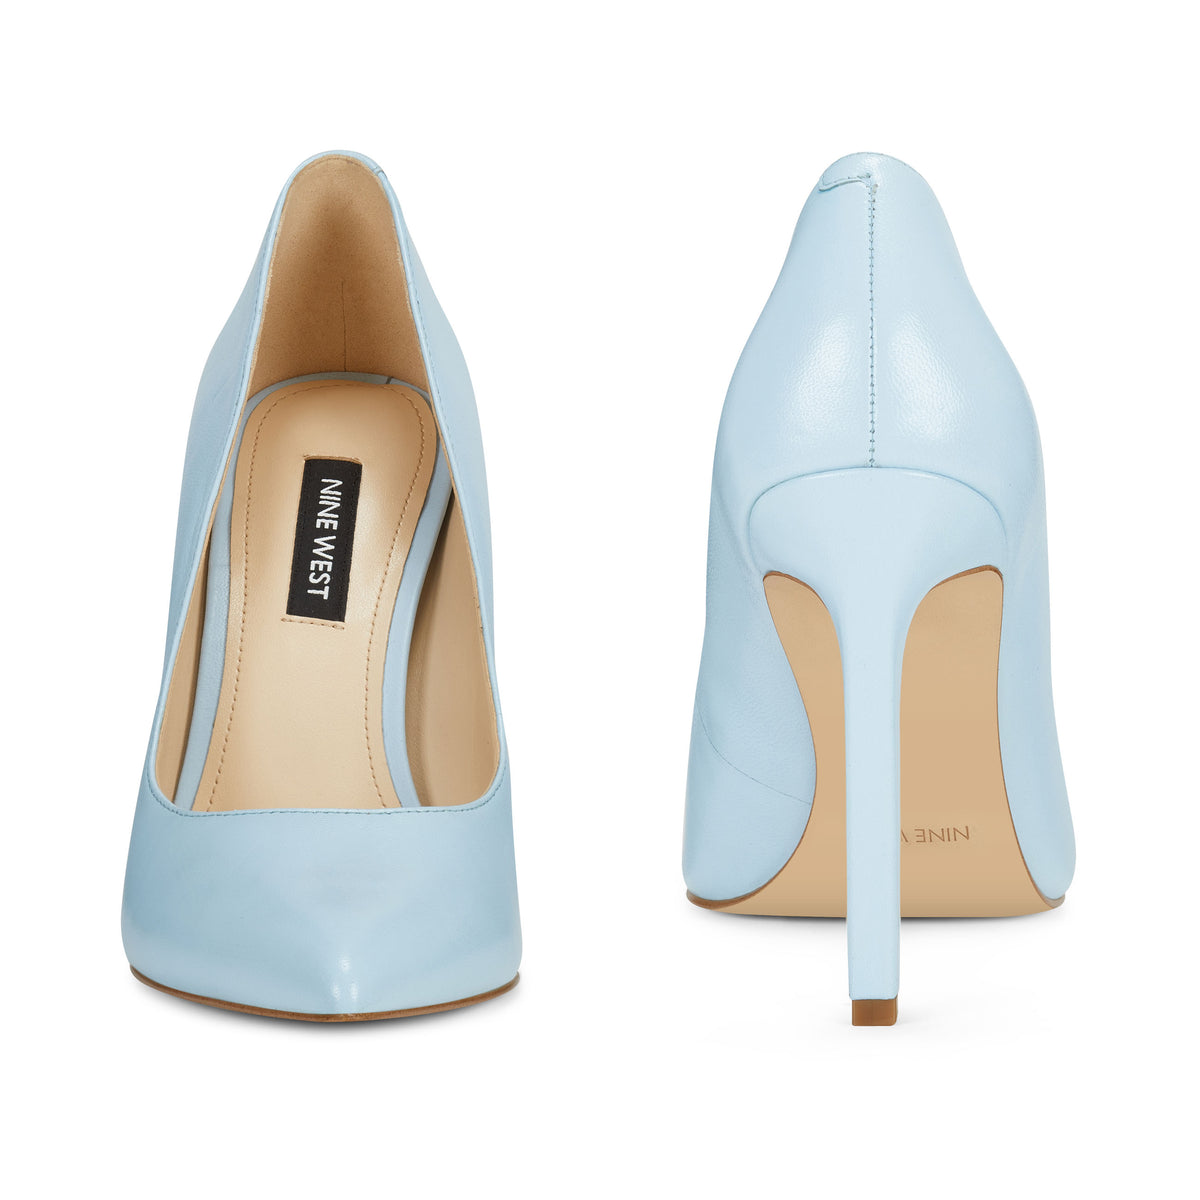 tatiana-pointy-toe-pumps-in-light-blue-leather